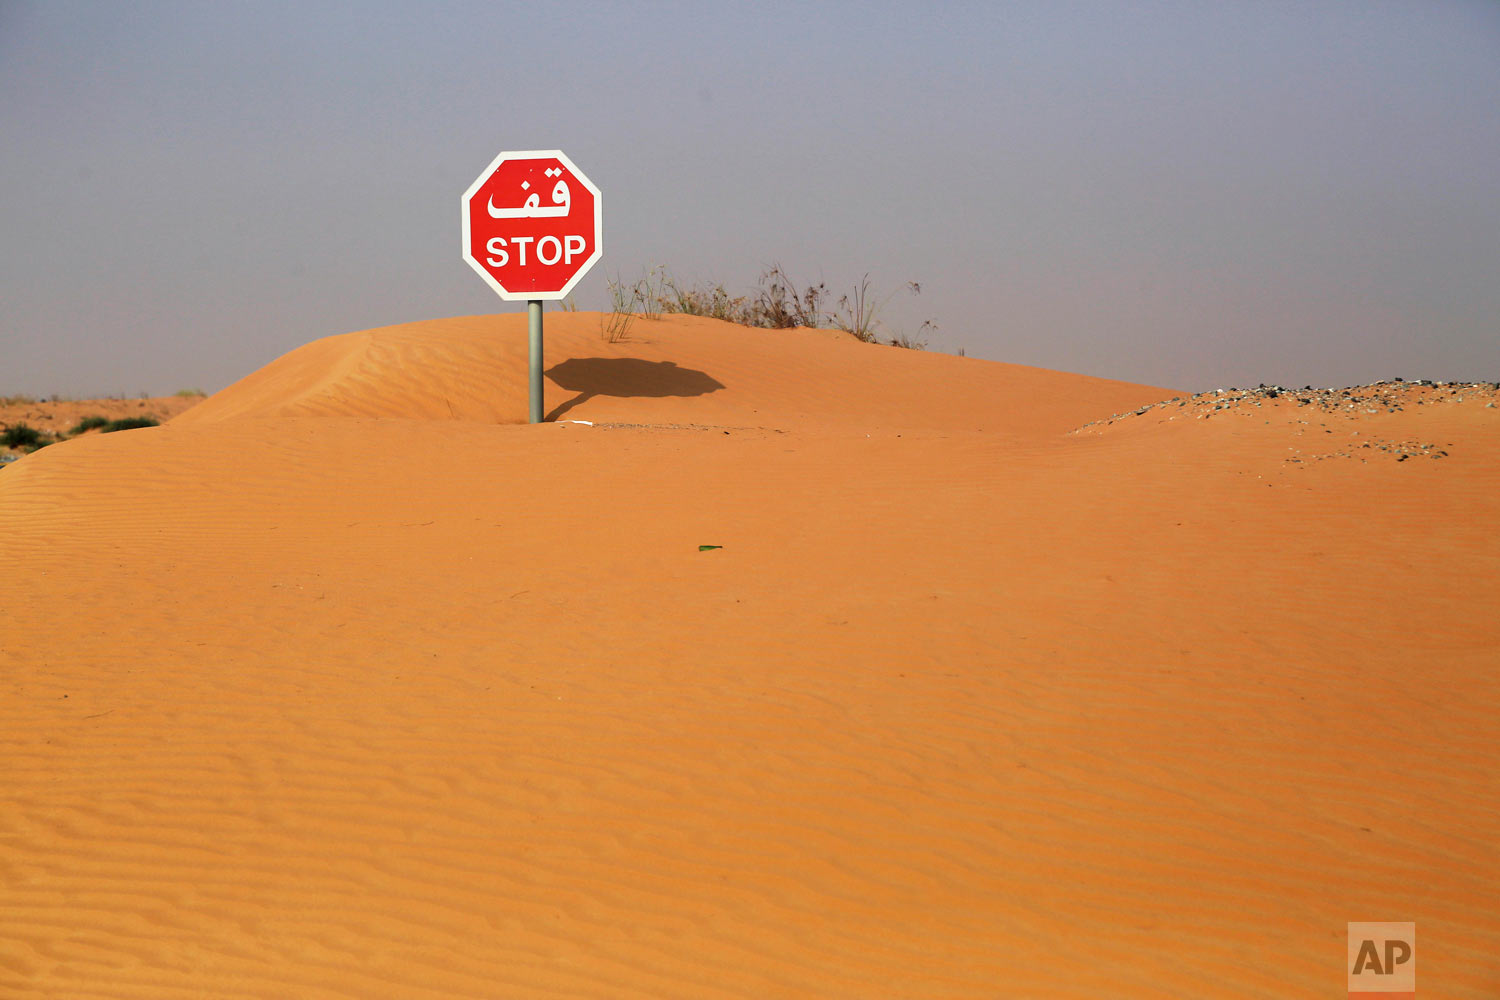 A sand drift partially covers a stop sign in the desert in Umm Al Quwain, United Arab Emirates, Saturday, Oct. 6, 2018. (AP Photo/Jon Gambrell)